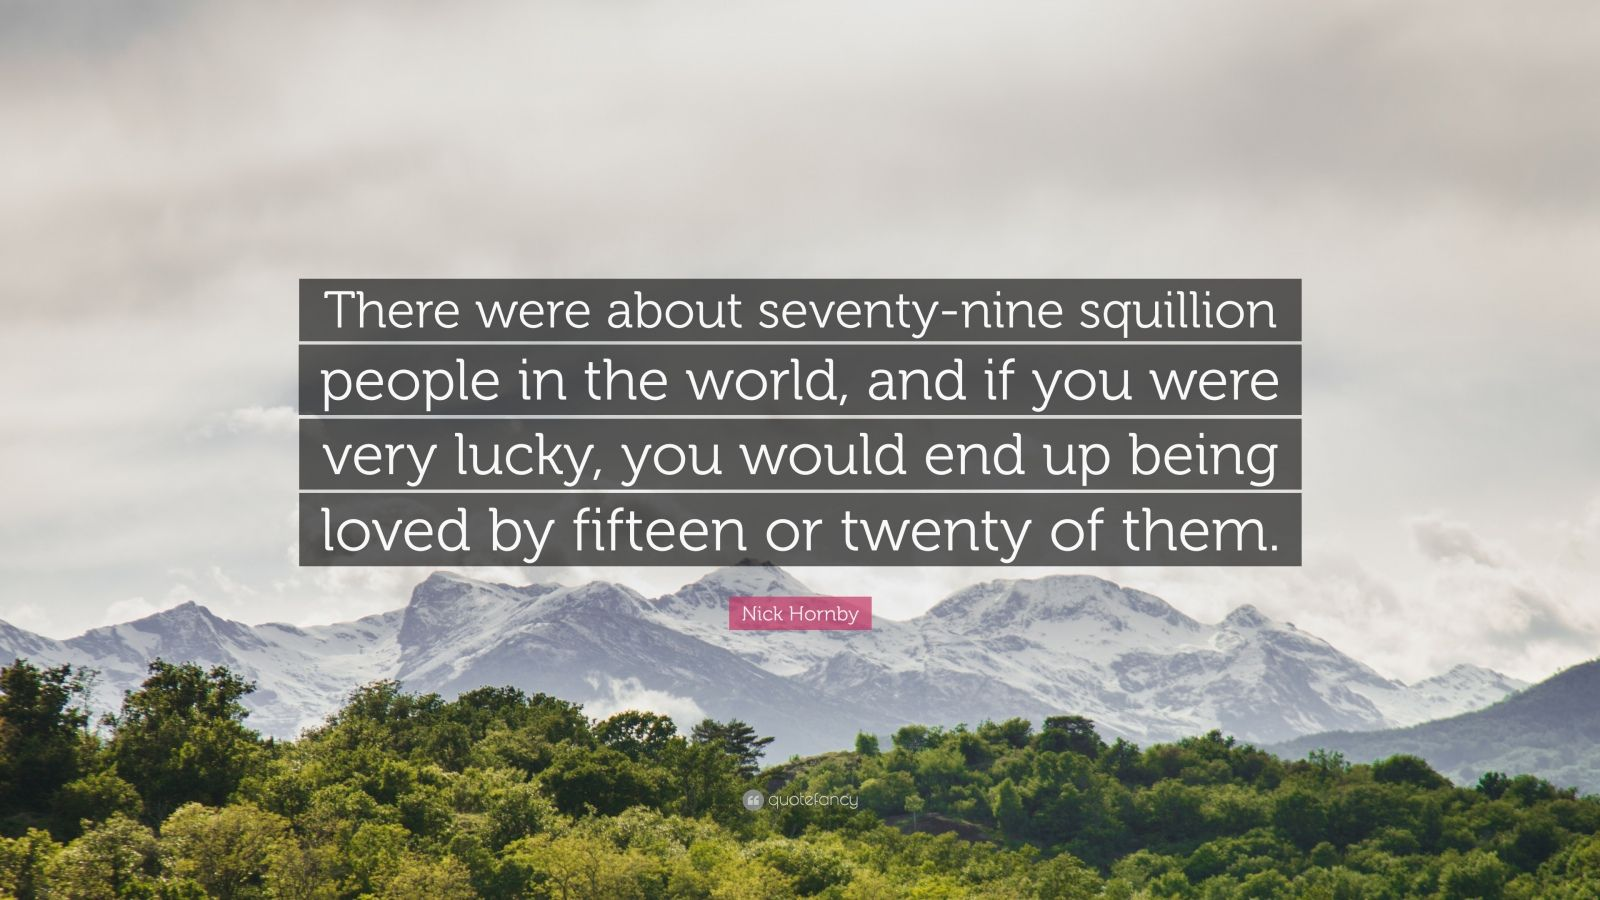 """Nick Hornby Quote: """"There were about seventy-nine squillion people in the world, and if you were very lucky, you would end up being loved by fifteen or twenty of them."""""""